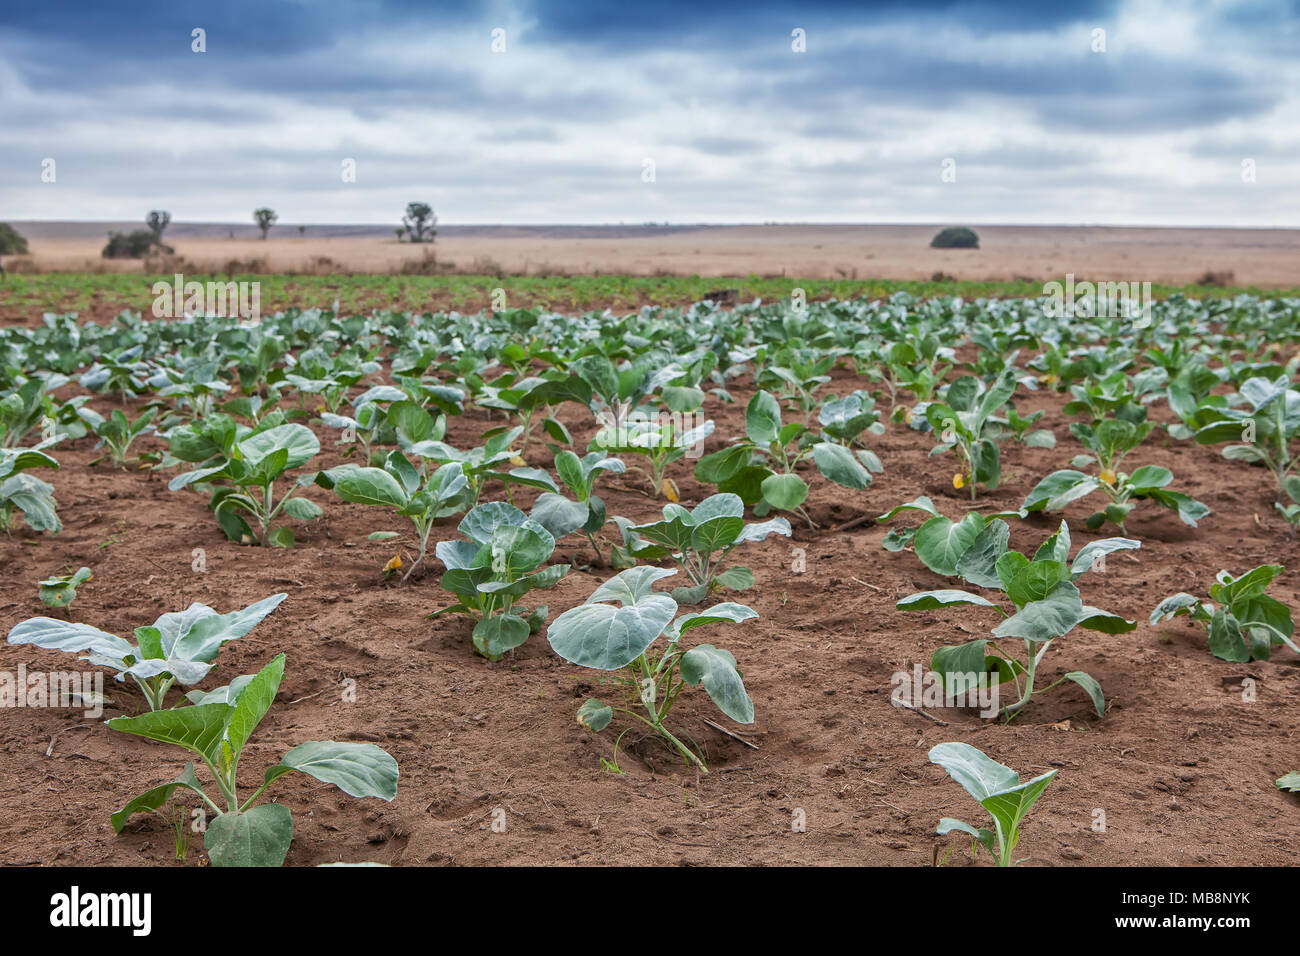 Field of African agriculture in Cabinda. Angola. - Stock Image